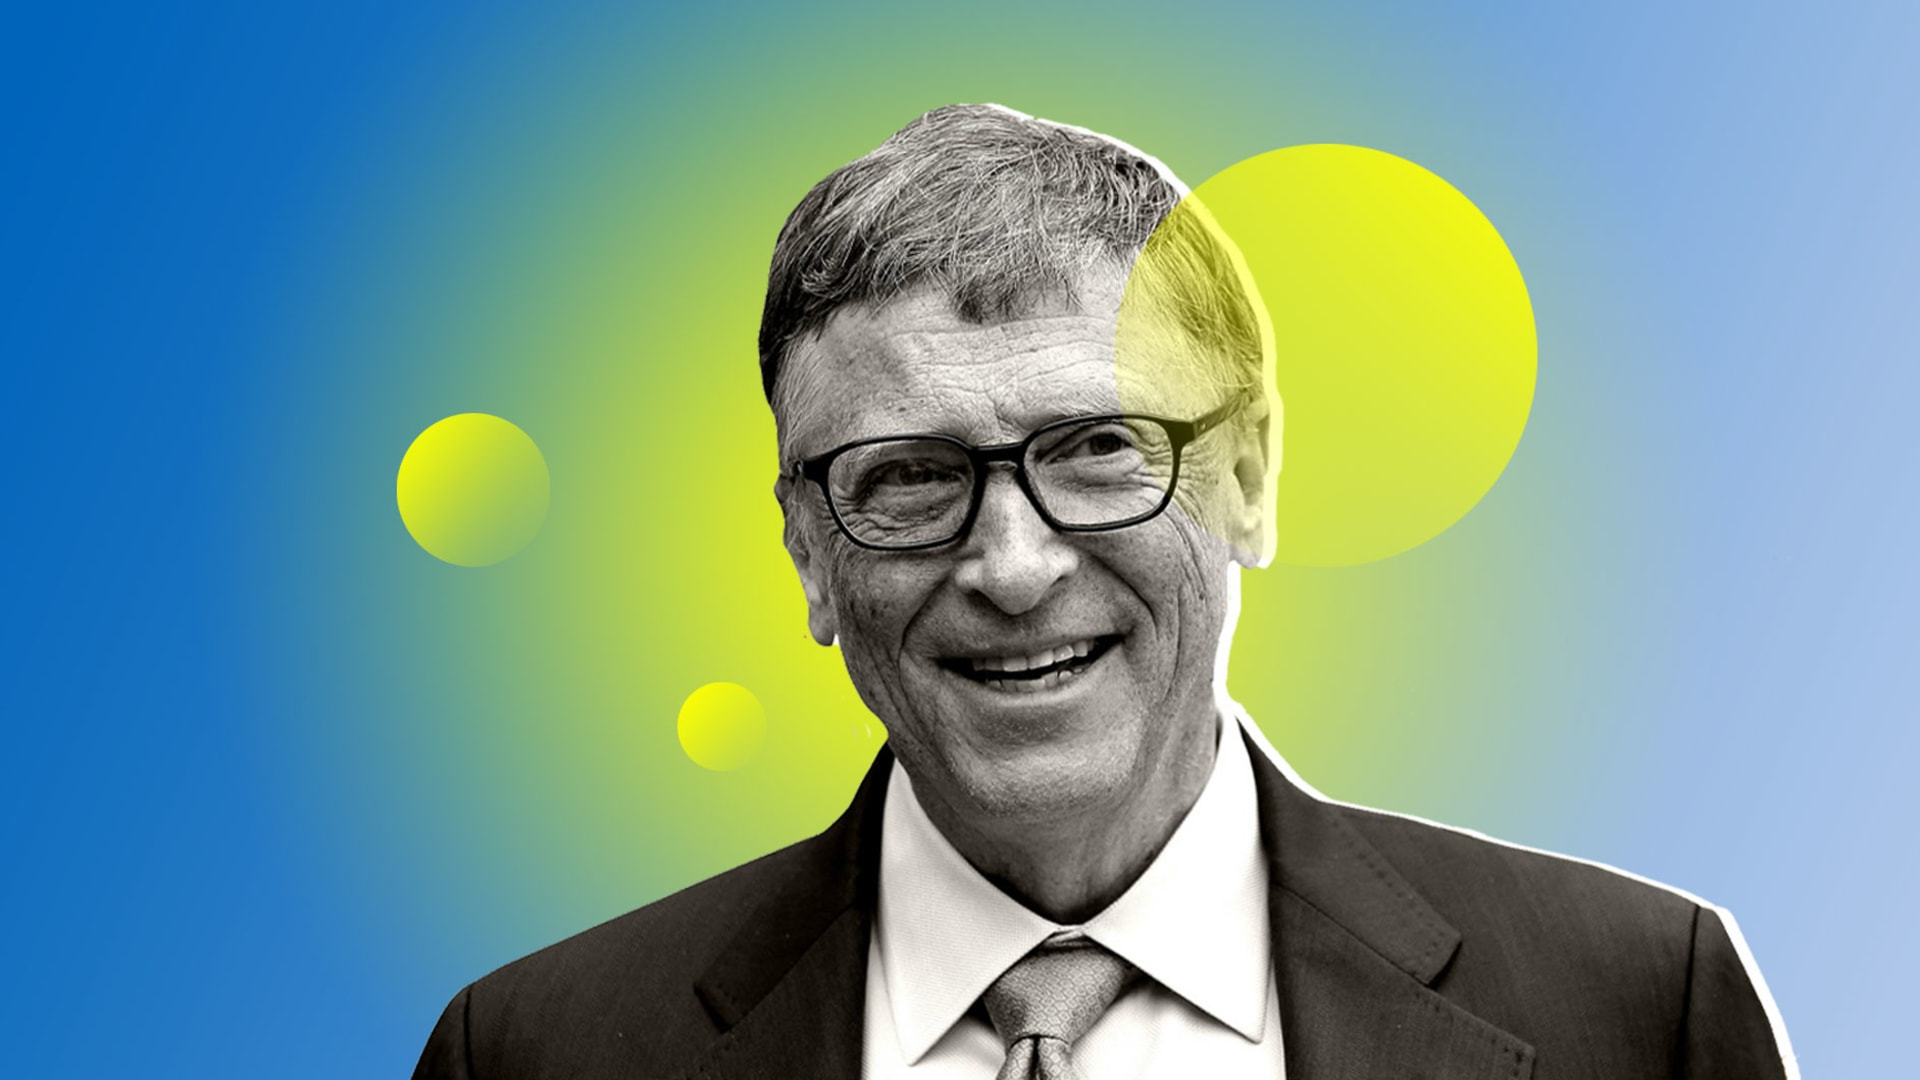 In 2 Words, Bill Gates Shared What Separates Successful Leaders From the Pack